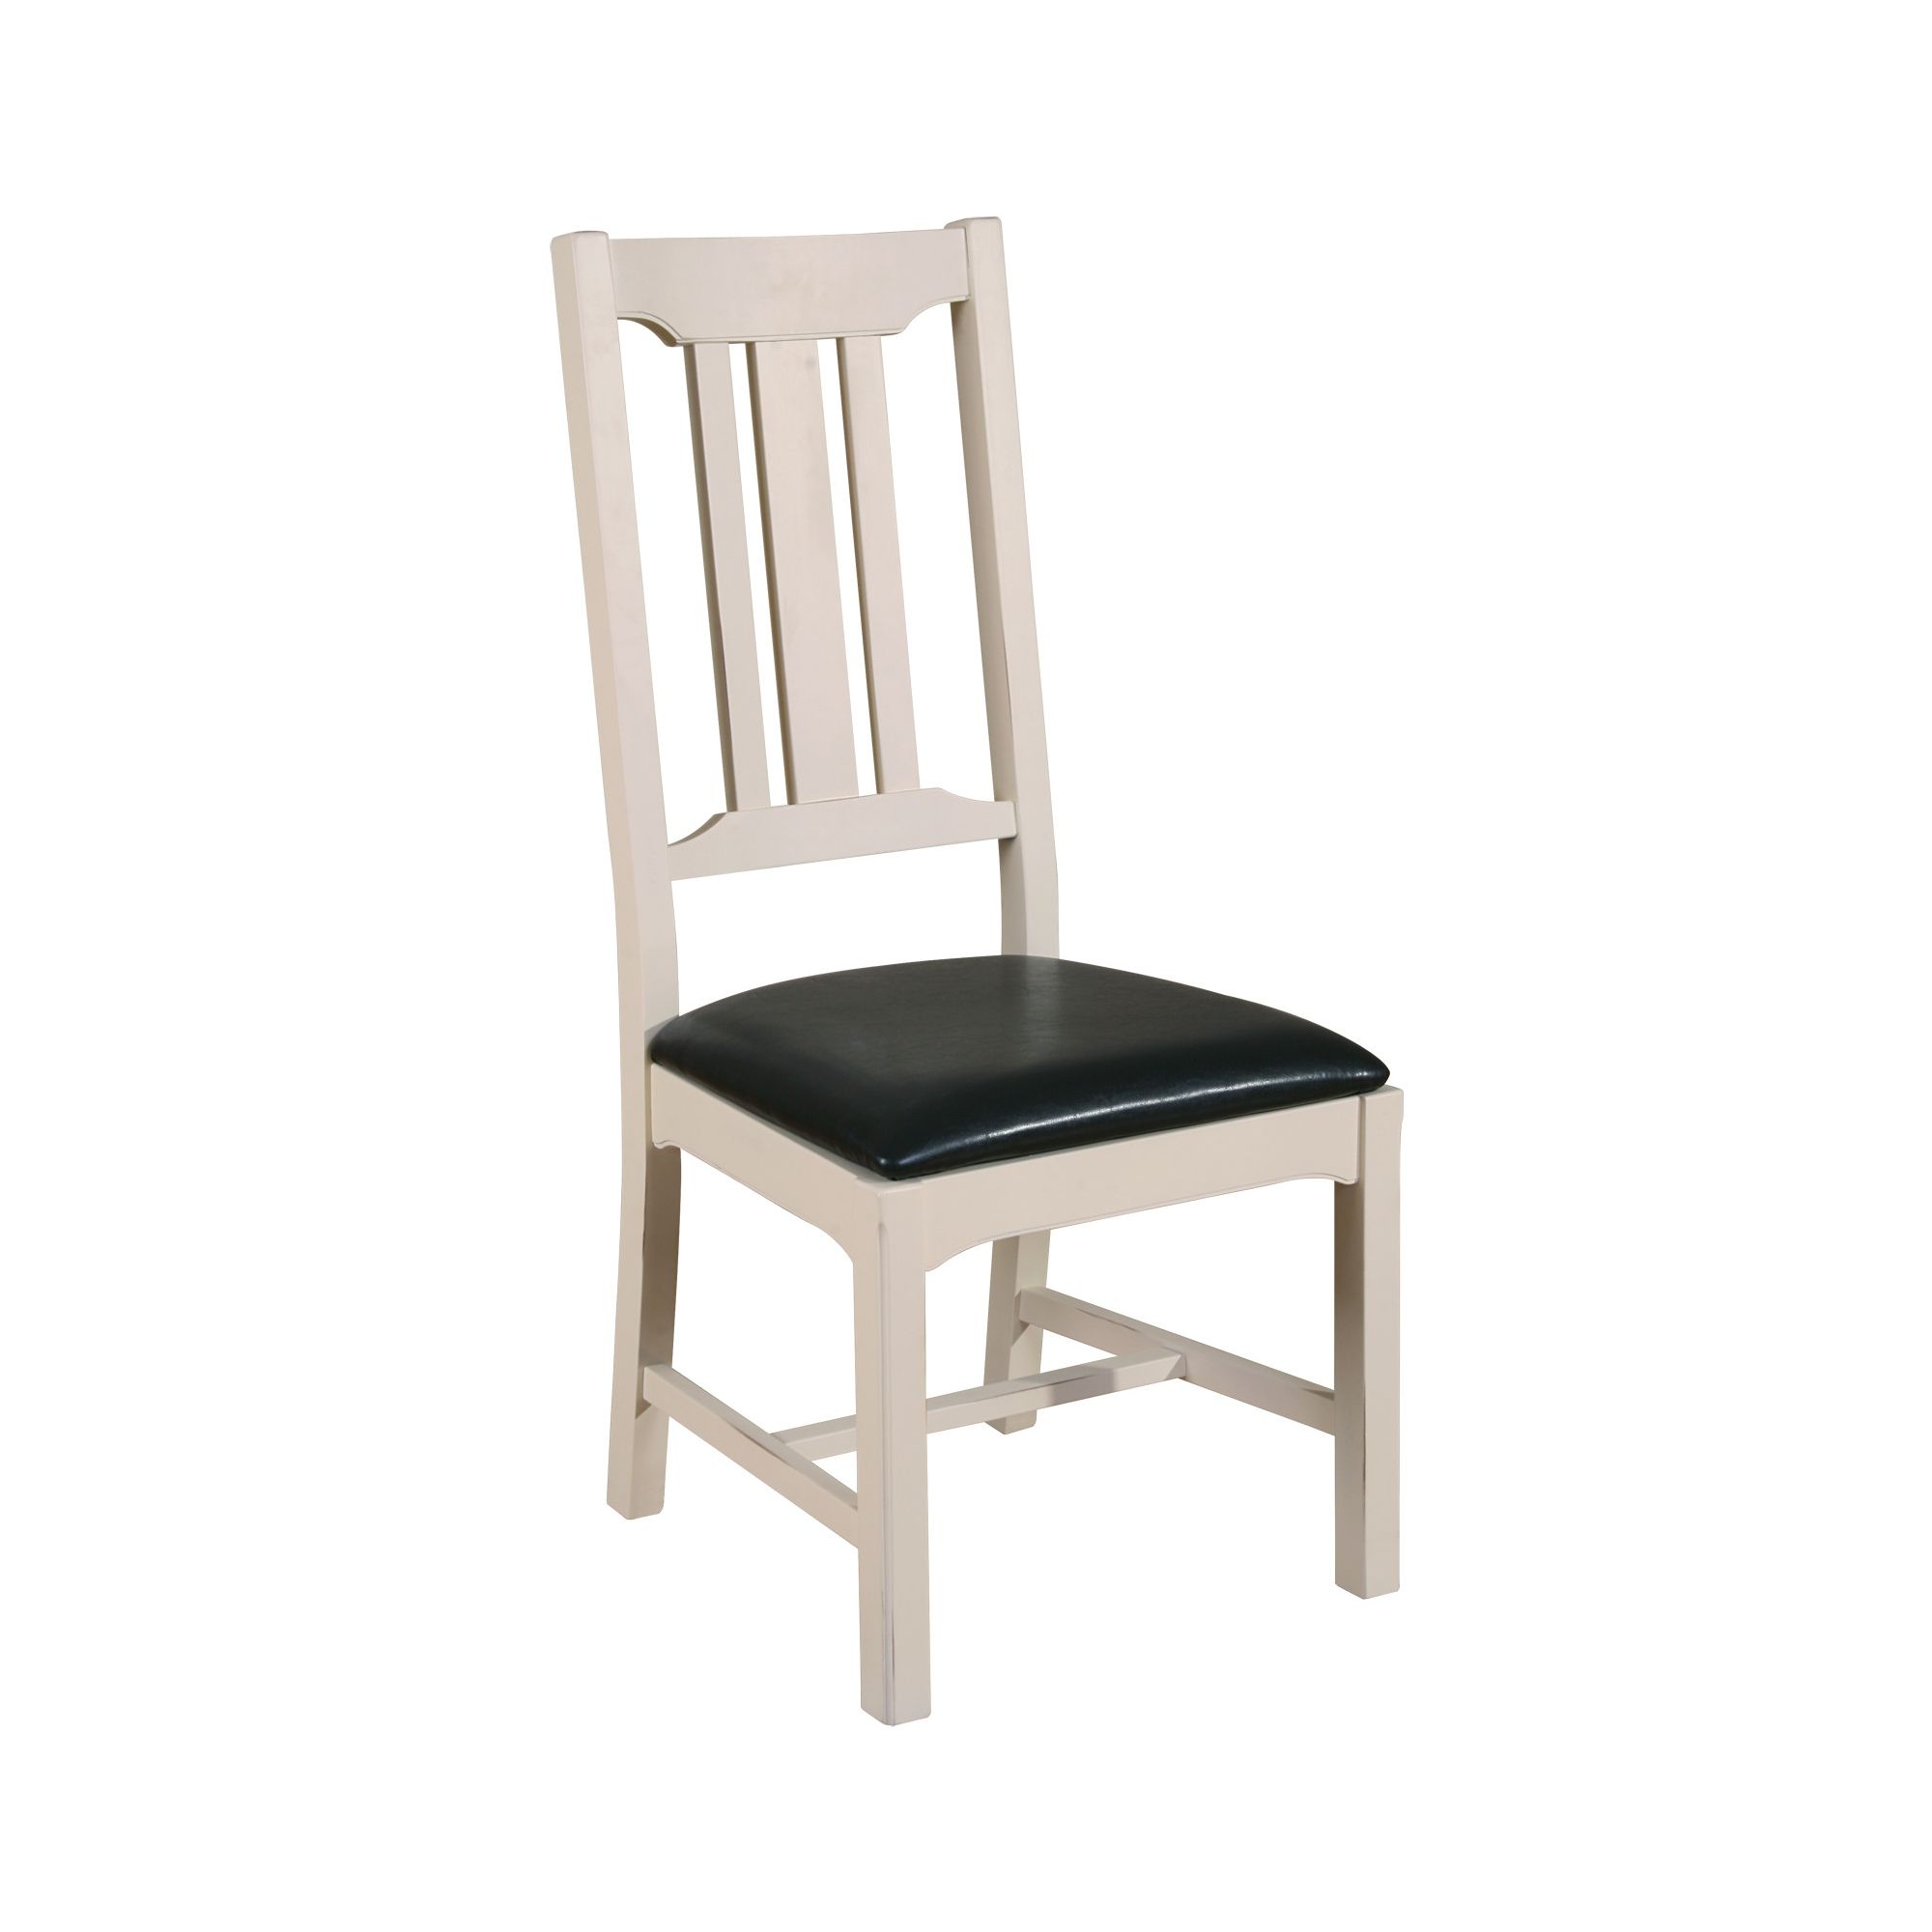 Kelburn Furniture Ma**eille Dining Chair (Set of 2)